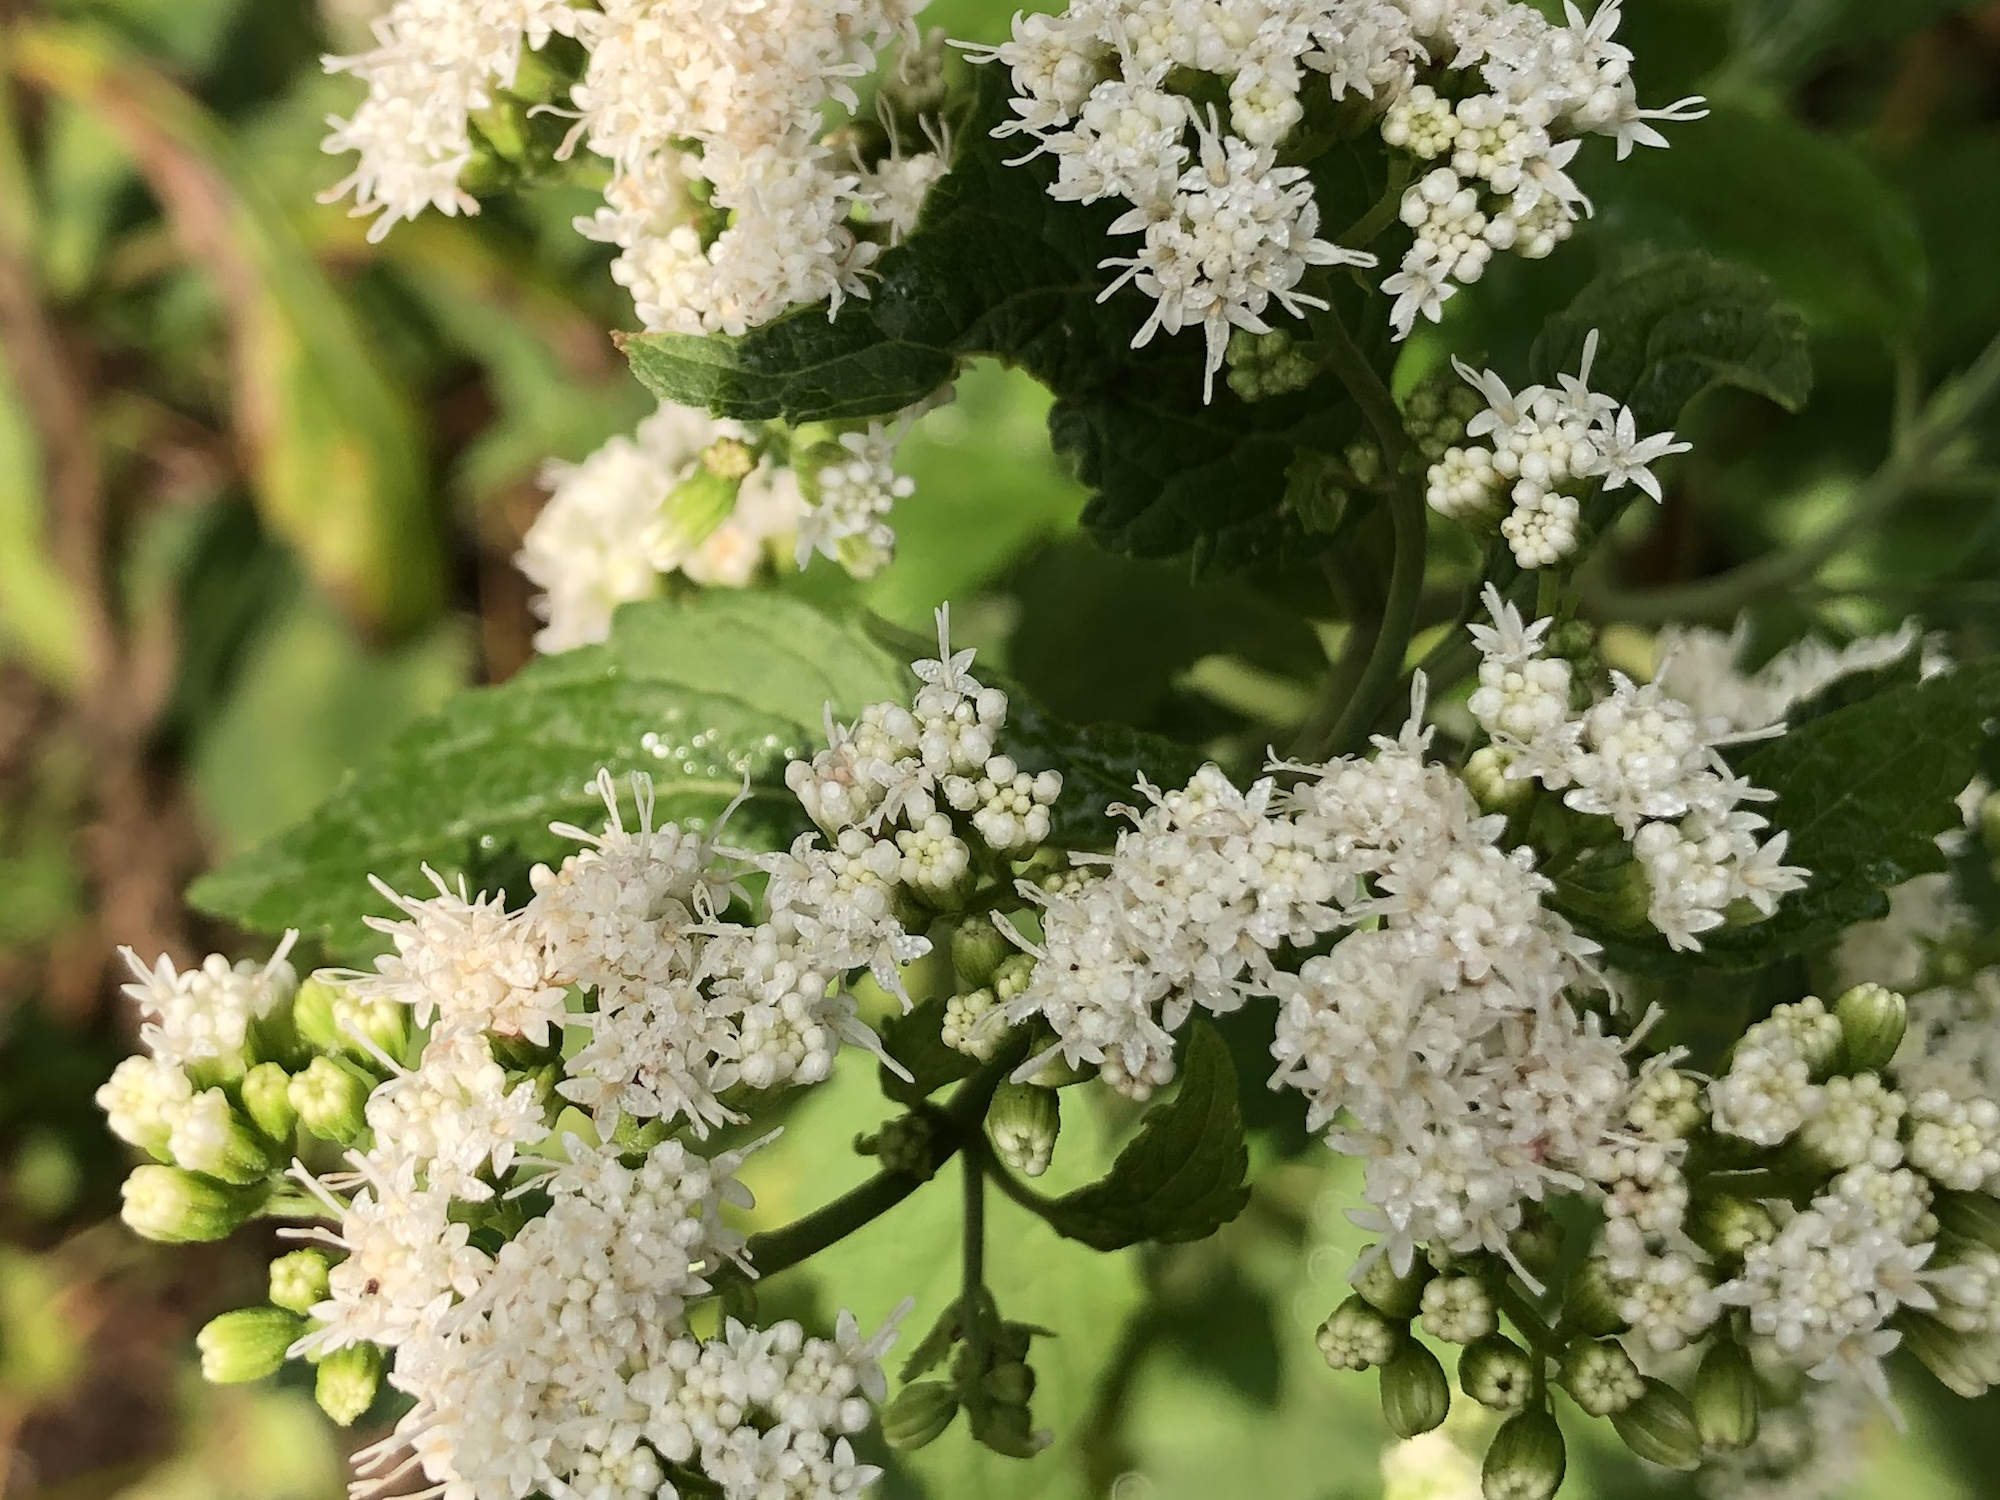 White Snakeroot by Agawa Path in Madison, Wisconsin on September 13, 2020.